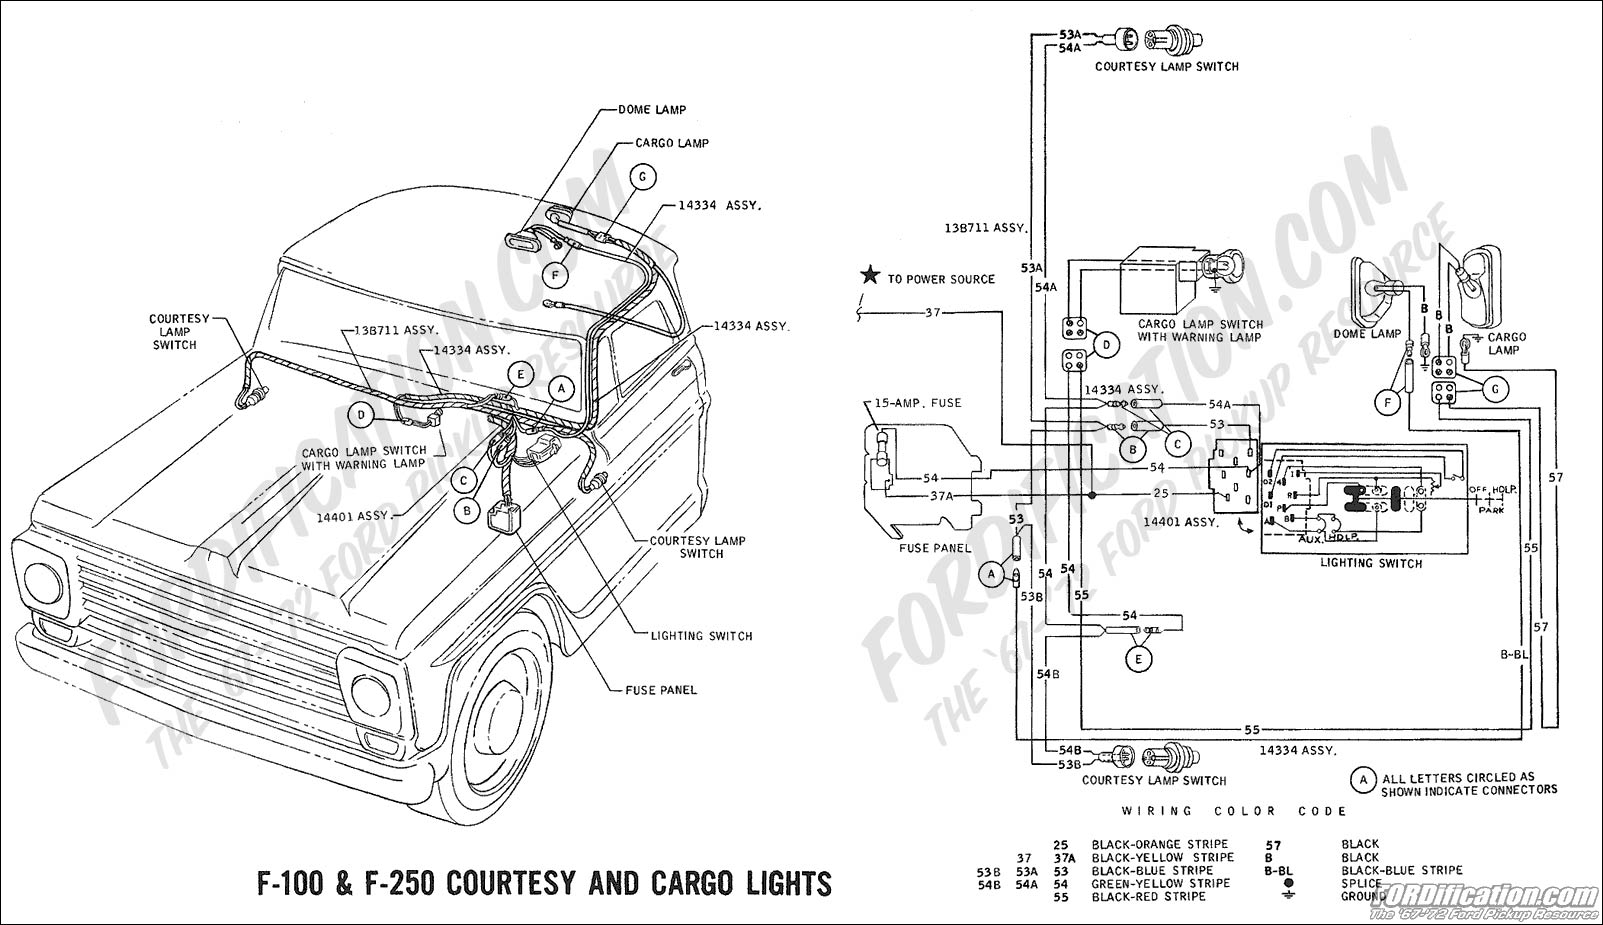 Ford Truck Technical Drawings And Schematics Section H Wiring 2003 F 250 Interior Lights Diagram 1969 100 Courtesy Cargo